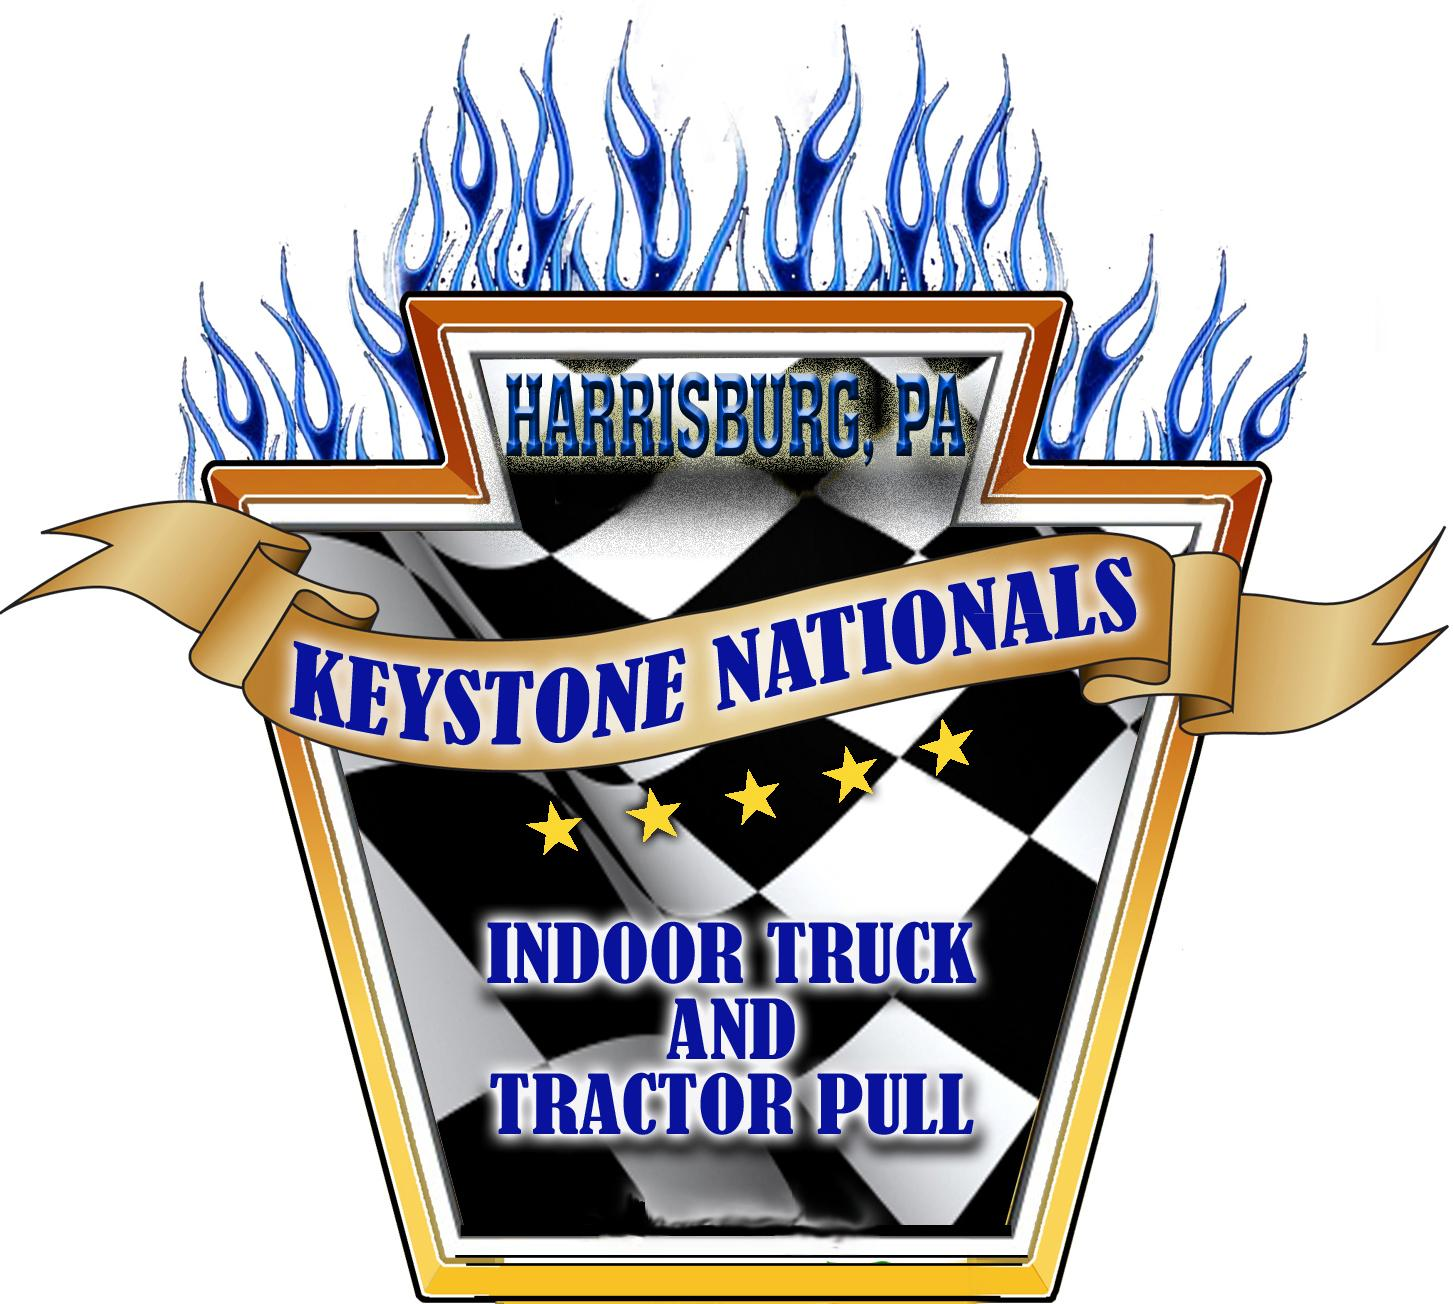 2019 KEYSTONE NATIONALS Tickets in Harrisburg, PA, United States